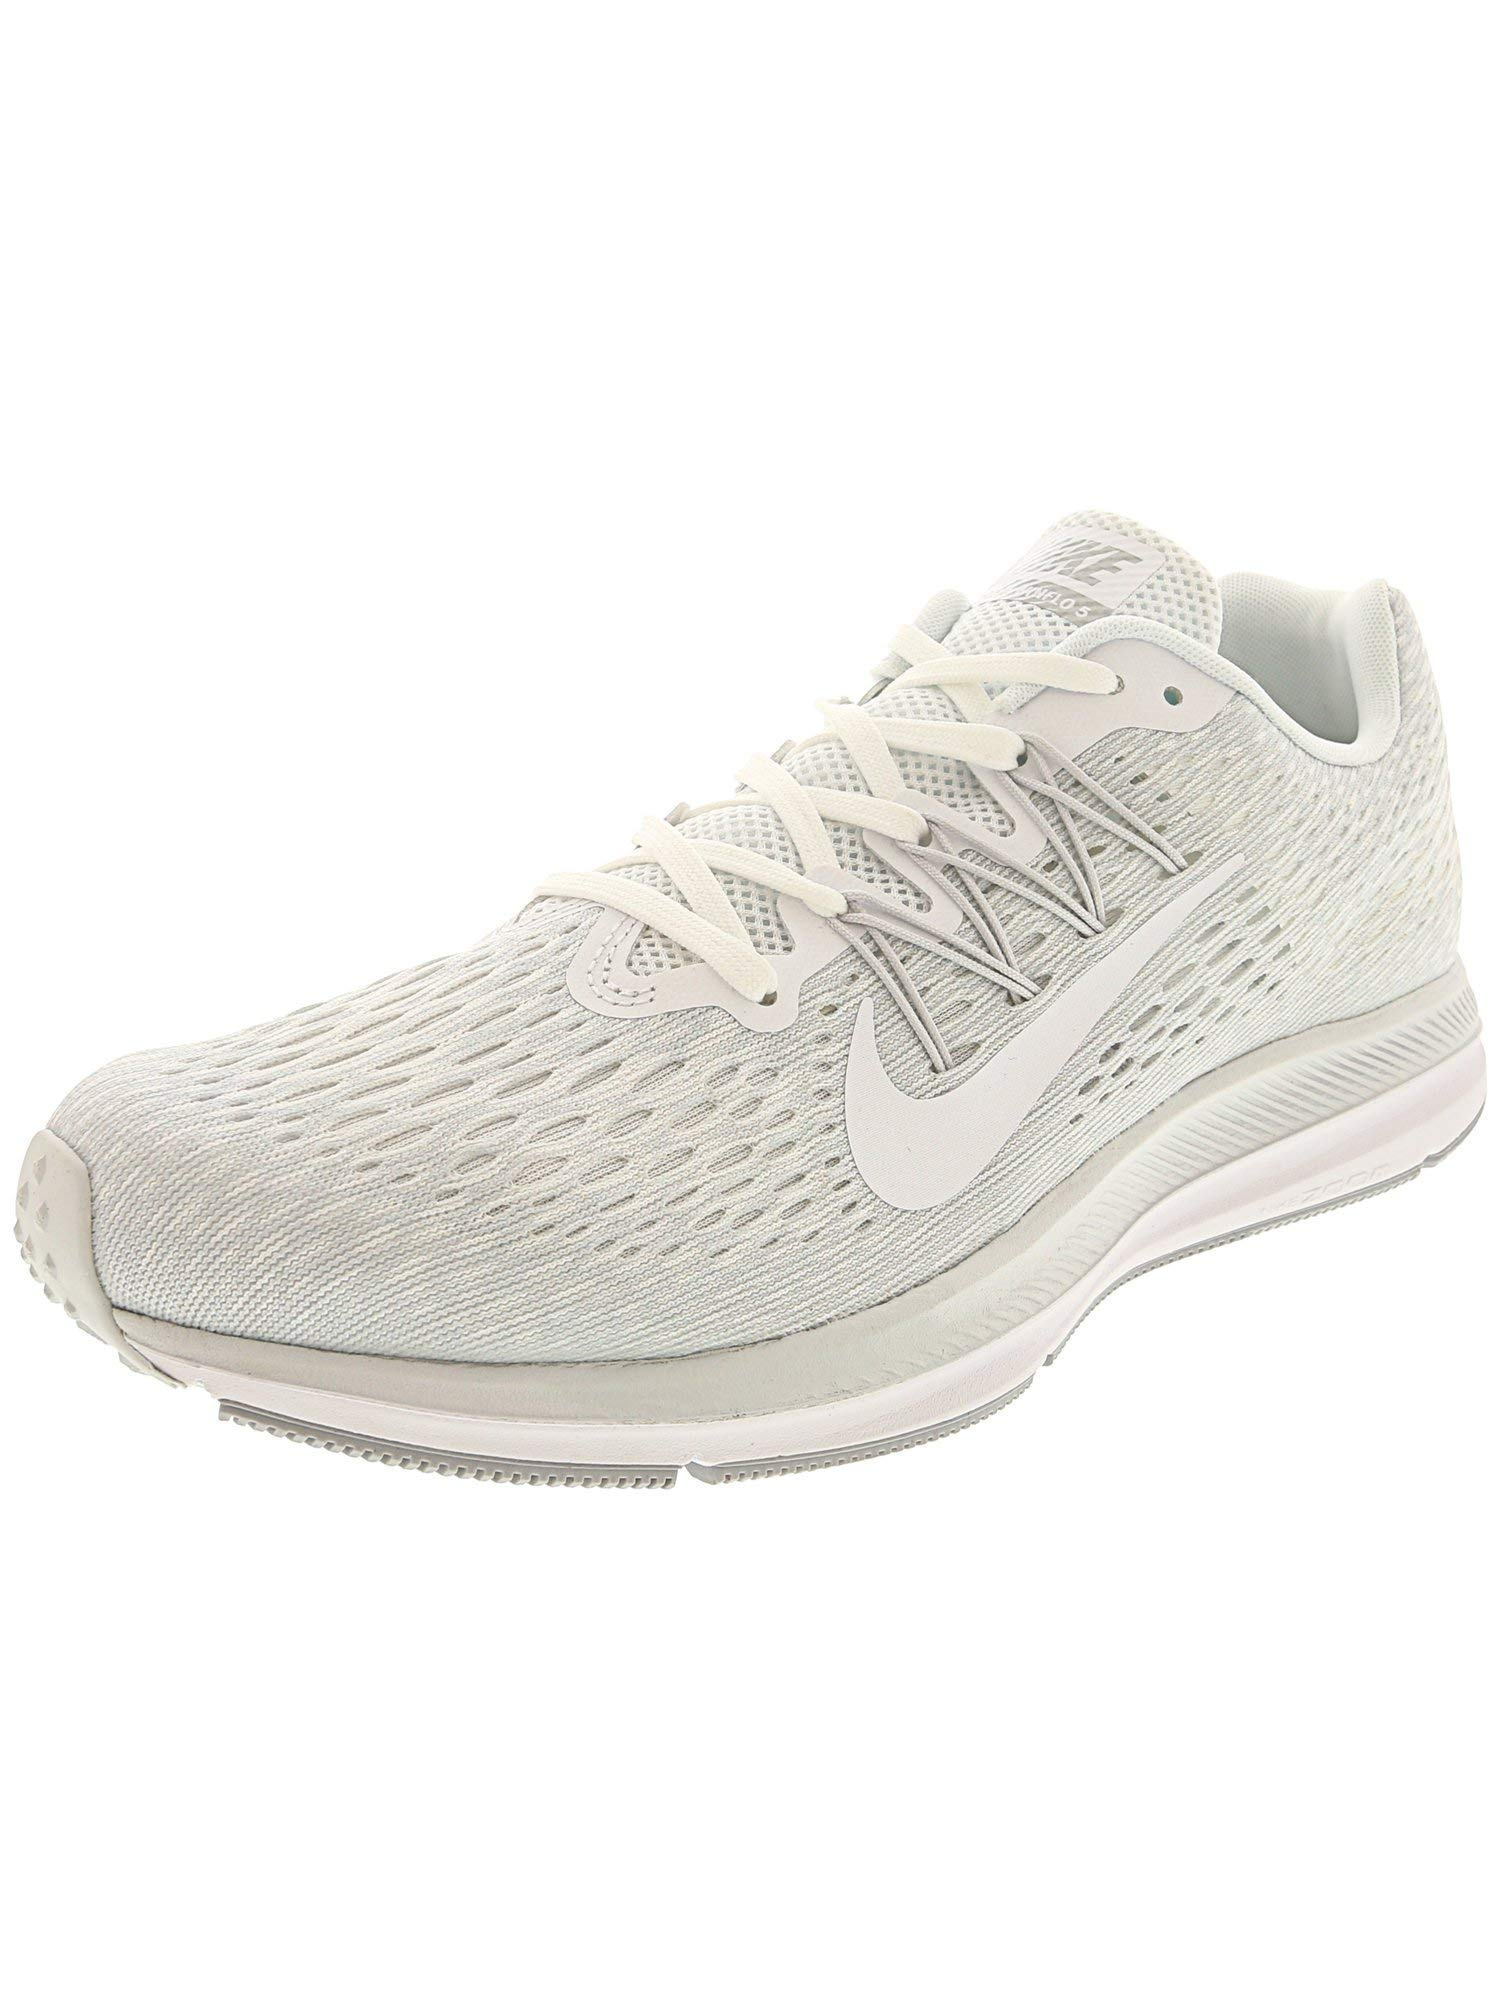 cc896f9968d Galleon - Nike Men s Zoom Winflo 5 White   - Wolf Grey Ankle-High Mesh  Running Shoe 10M